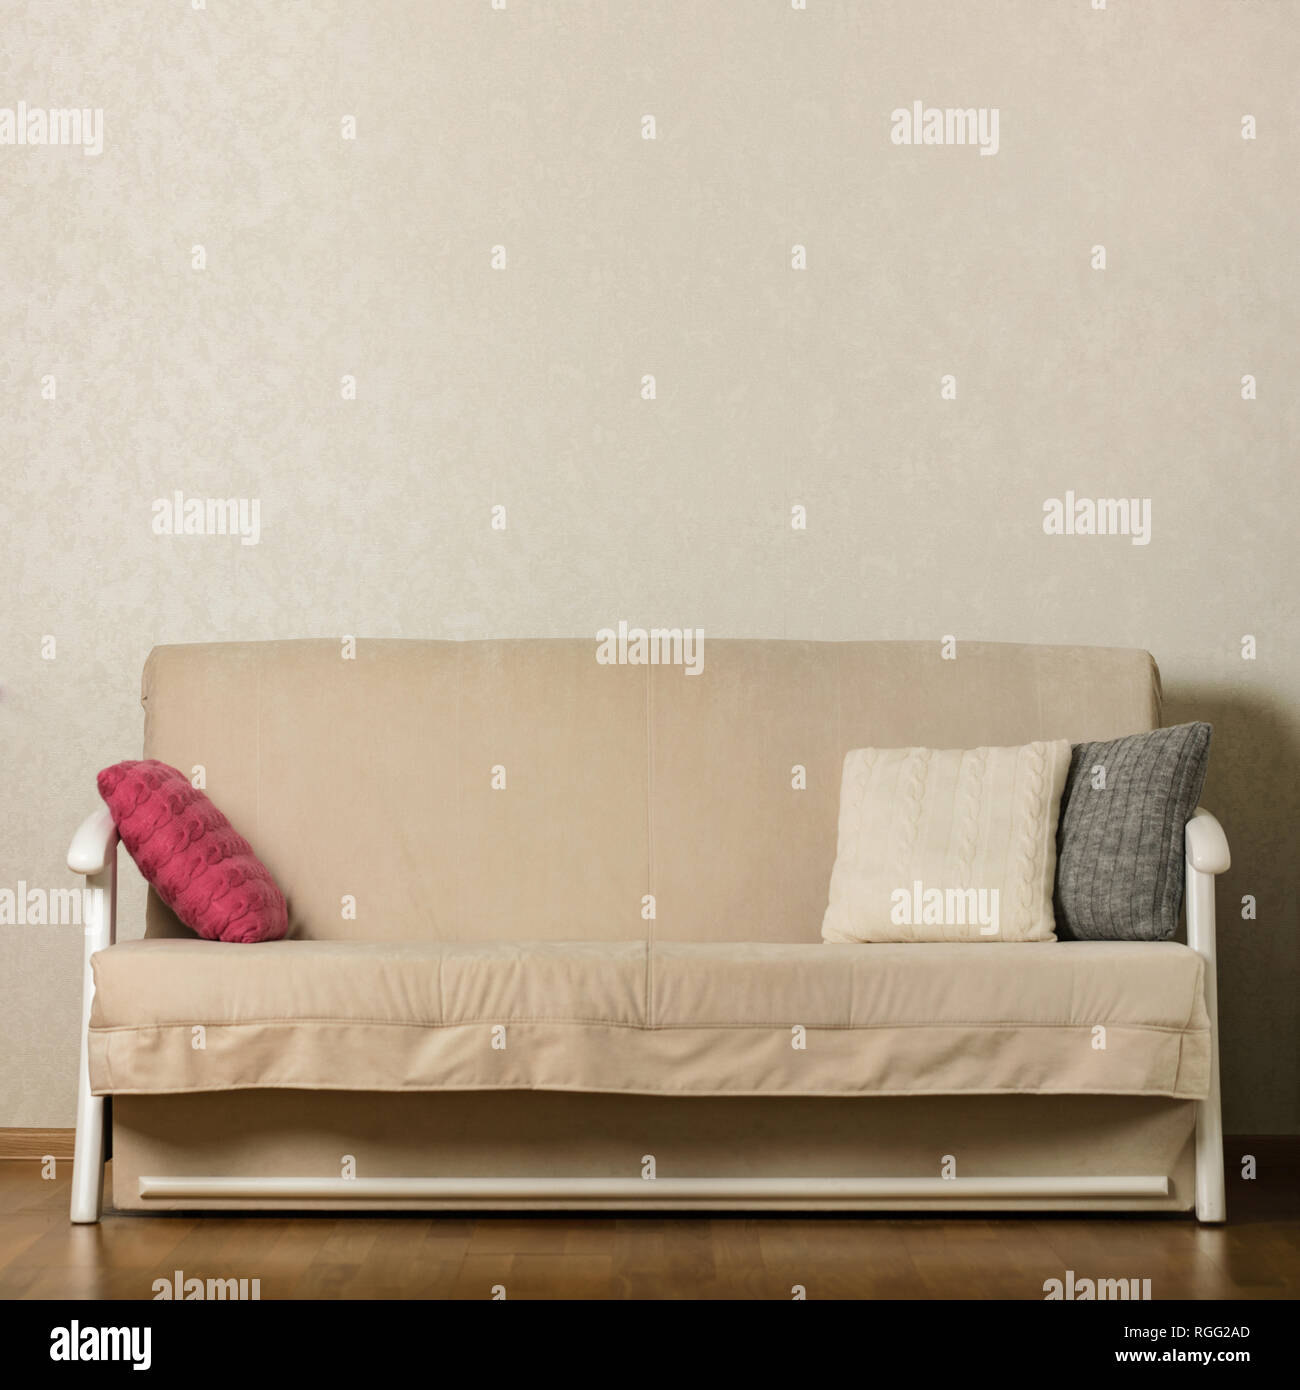 Focus On Furniture Sofa Bed Beige Sofa With Colorful Pillows Pink Grey White In The Living